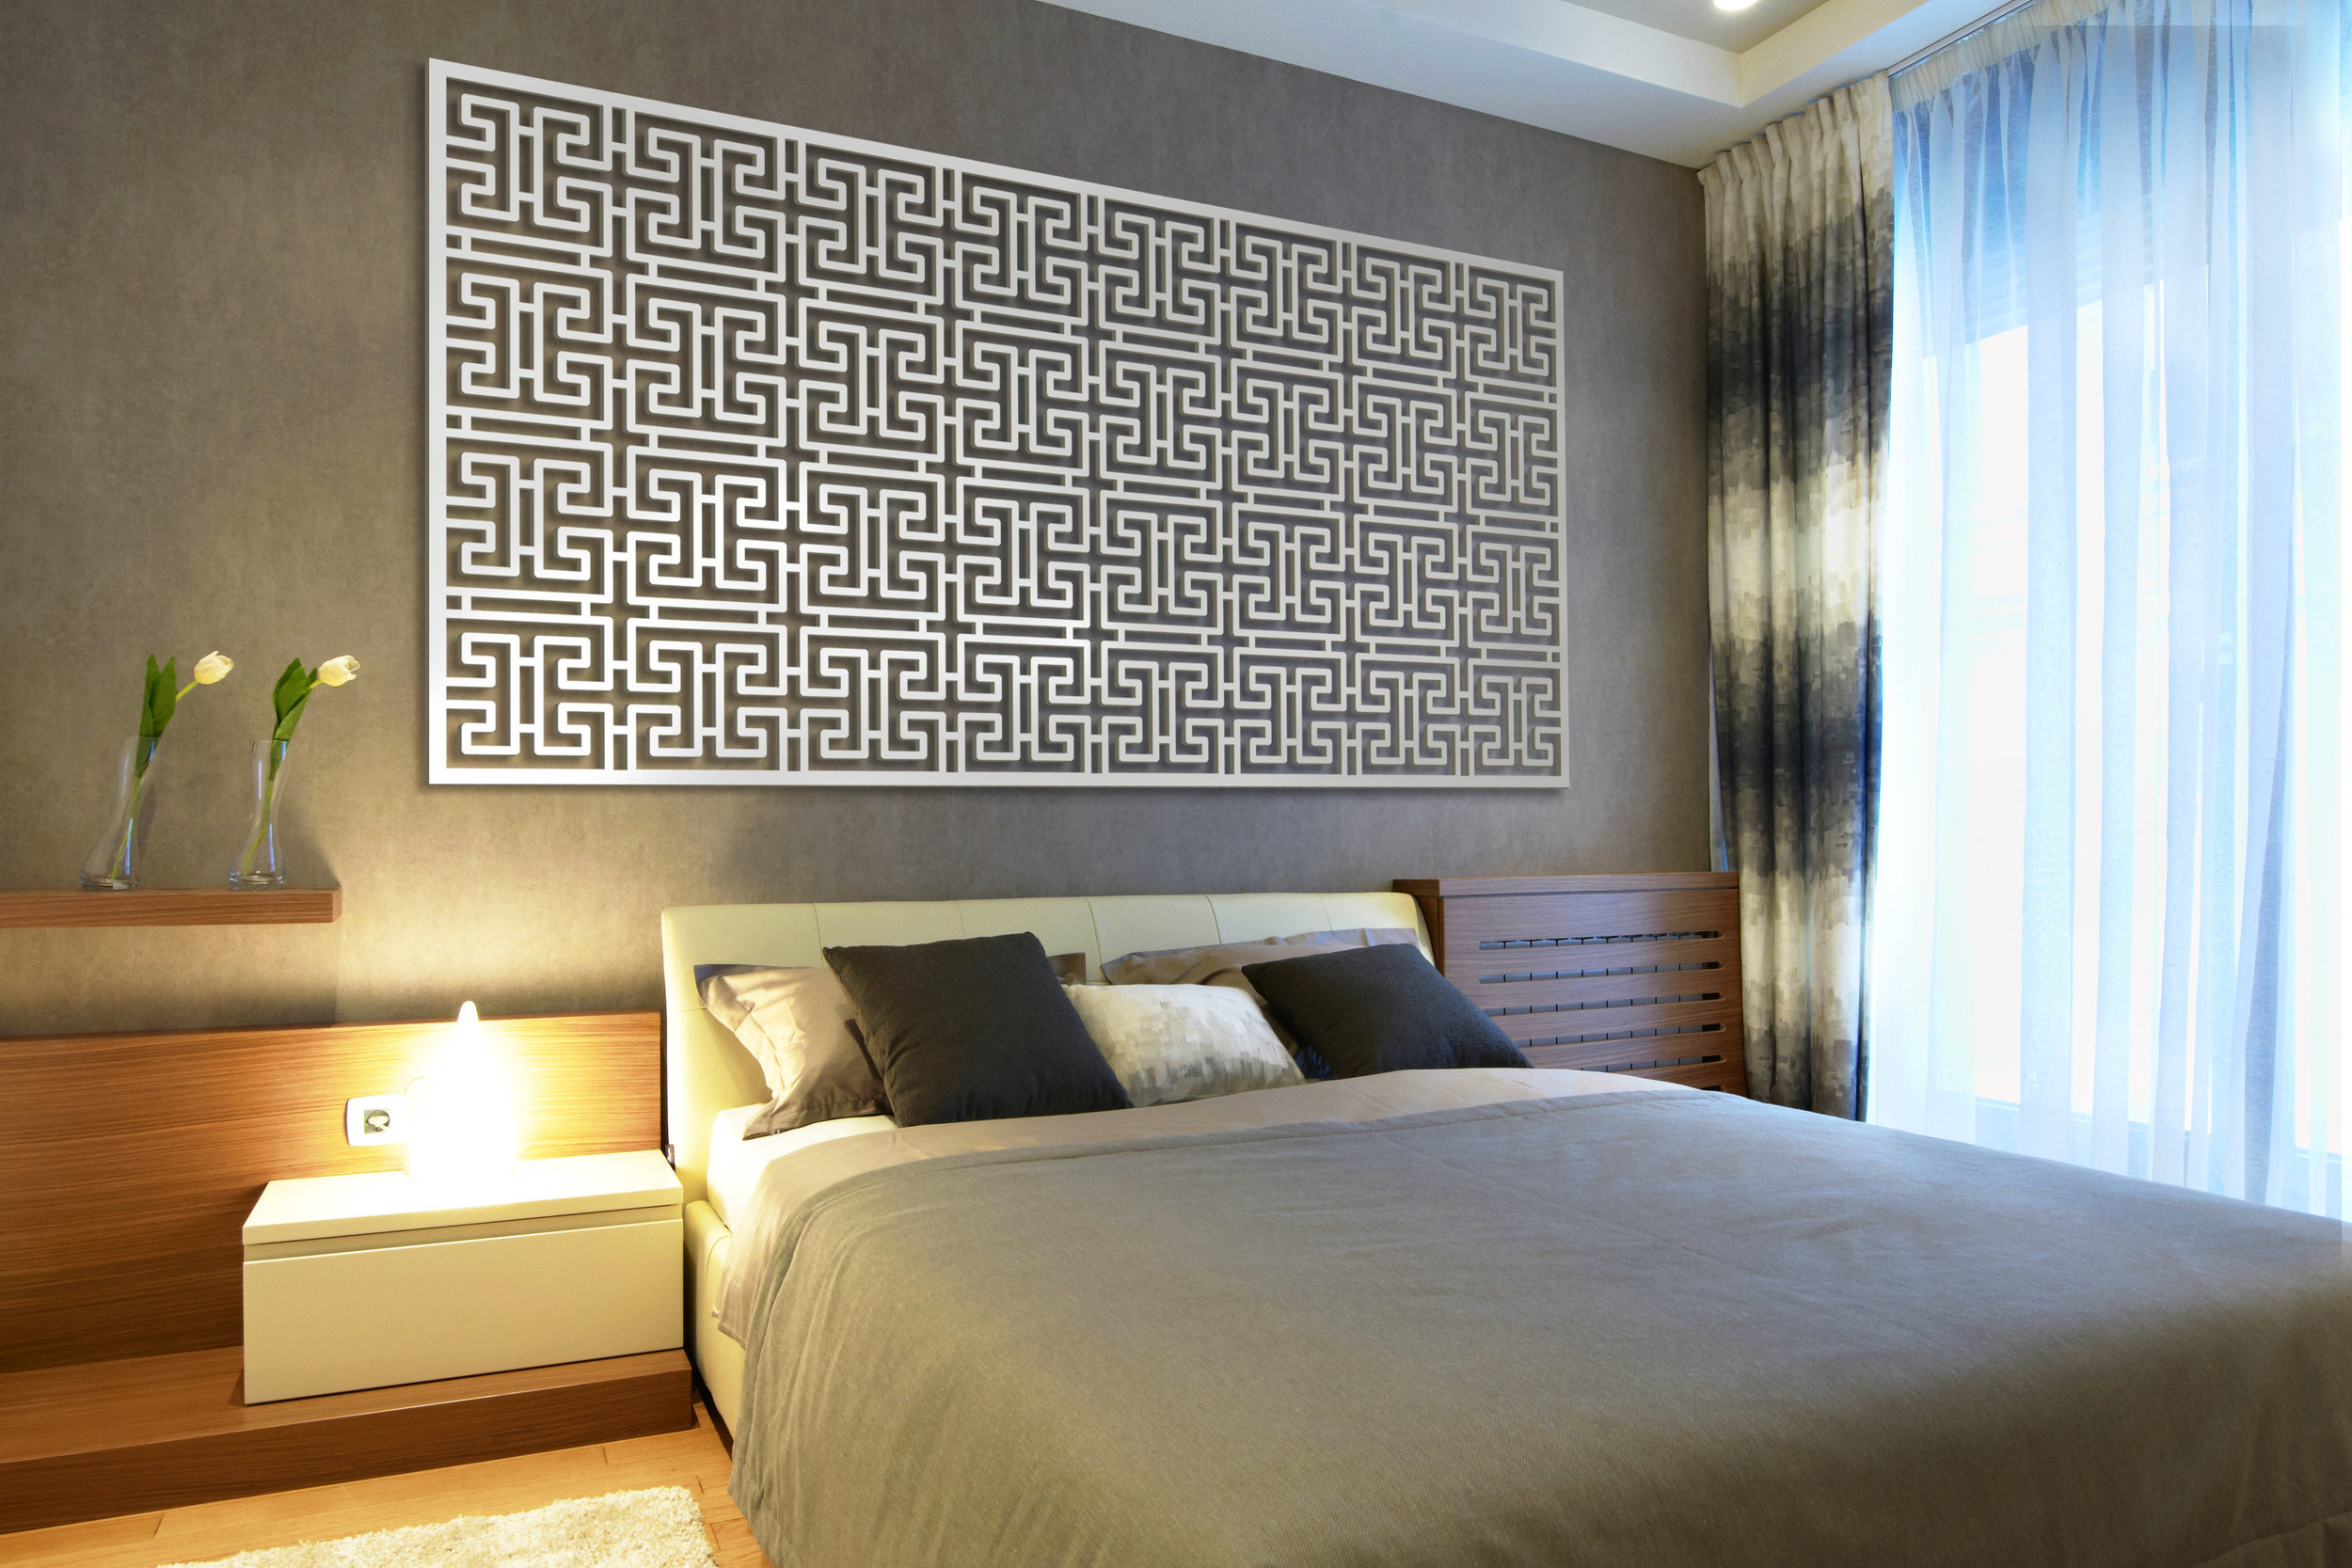 Installation Rendering C   Bejing Grille decorative hotel wall panel - painted